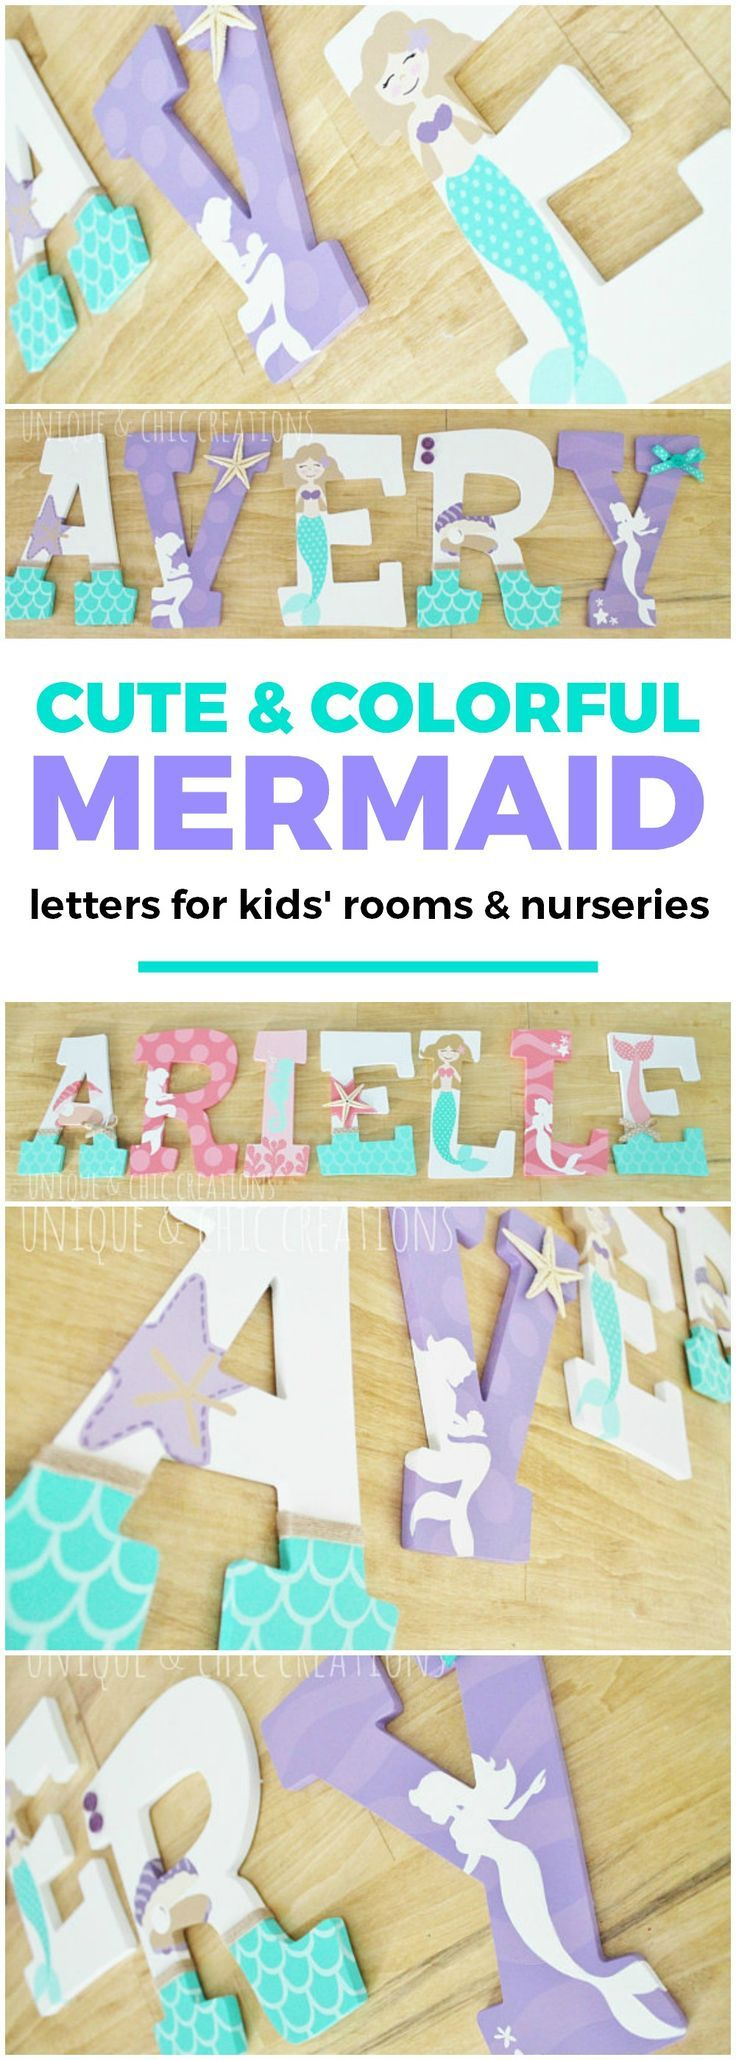 Lavender Purple and Aqua Mermaid Themed Personalized Wooden Letters for Nursery | Unique and Chic Creations Etsy custom home decor for kids rooms and nurseries | baby girl | baby girl's room | little girl's room ideas | baby shower gift idea | cute kids room